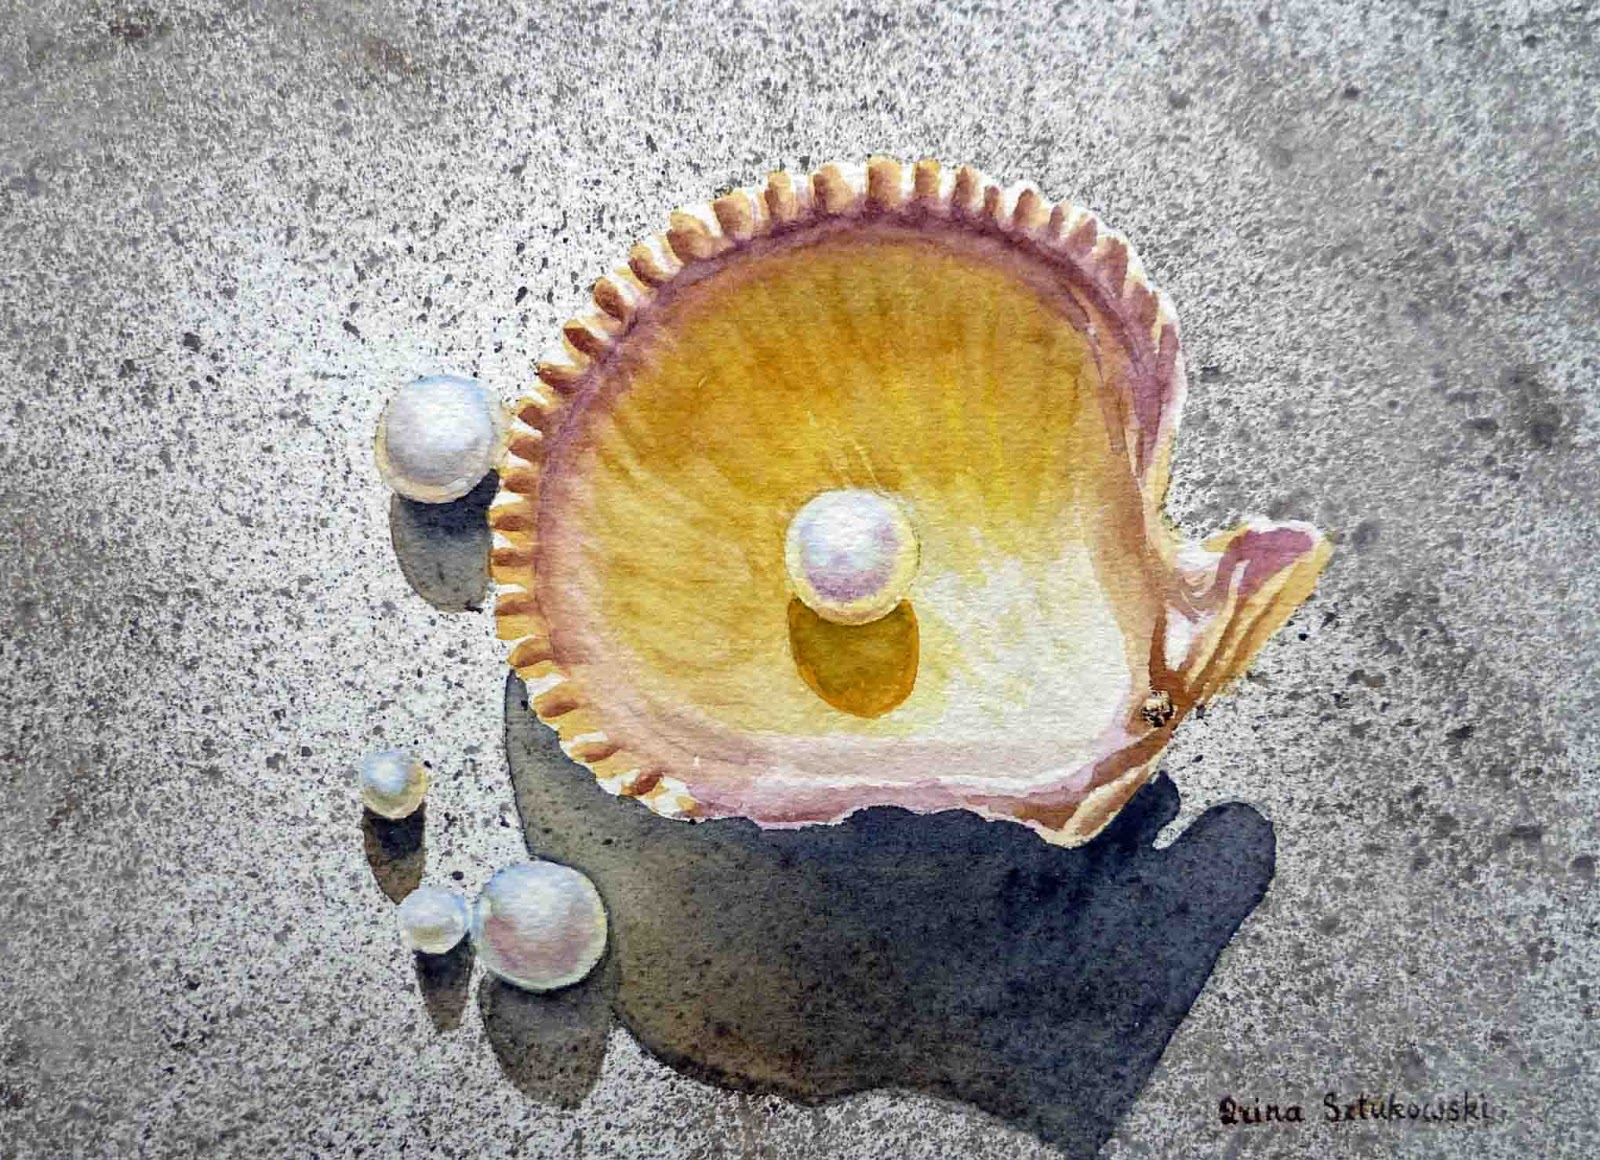 sea shells Find and save ideas about sea shells on pinterest | see more ideas about shells, shell art and shell crafts.